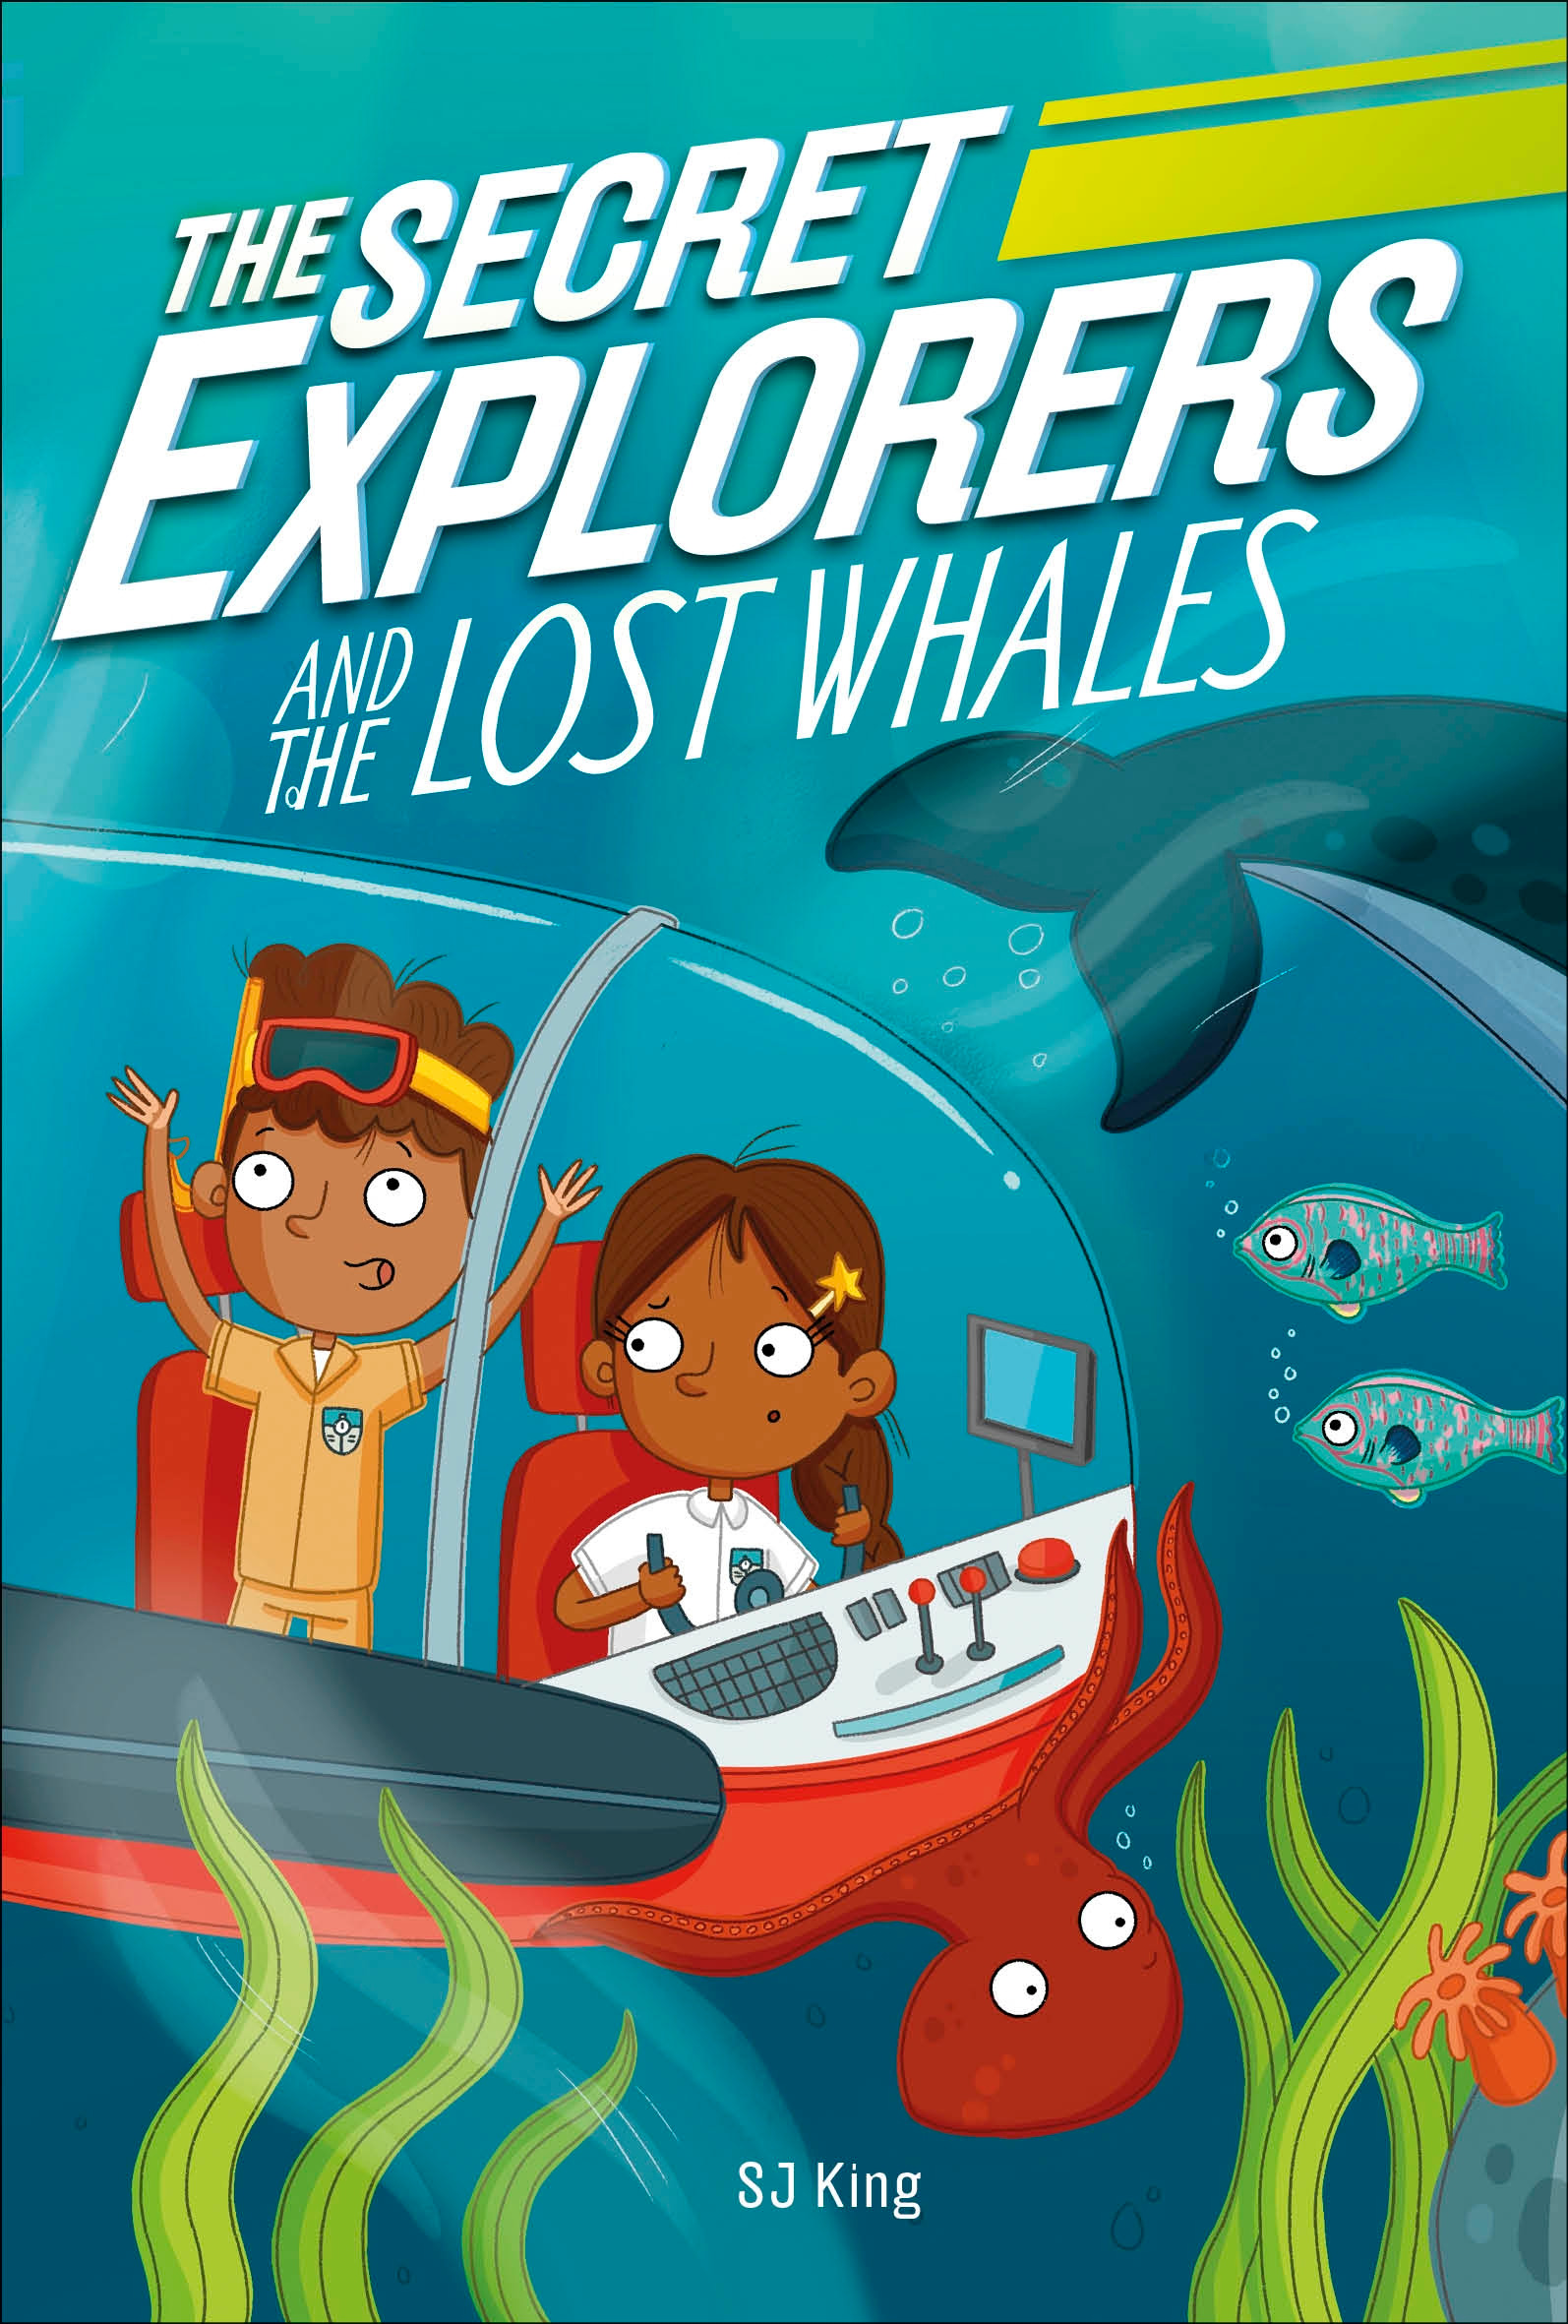 The Secret Explorers - The Secret Explorers and the Lost Whales | 6-8 years old